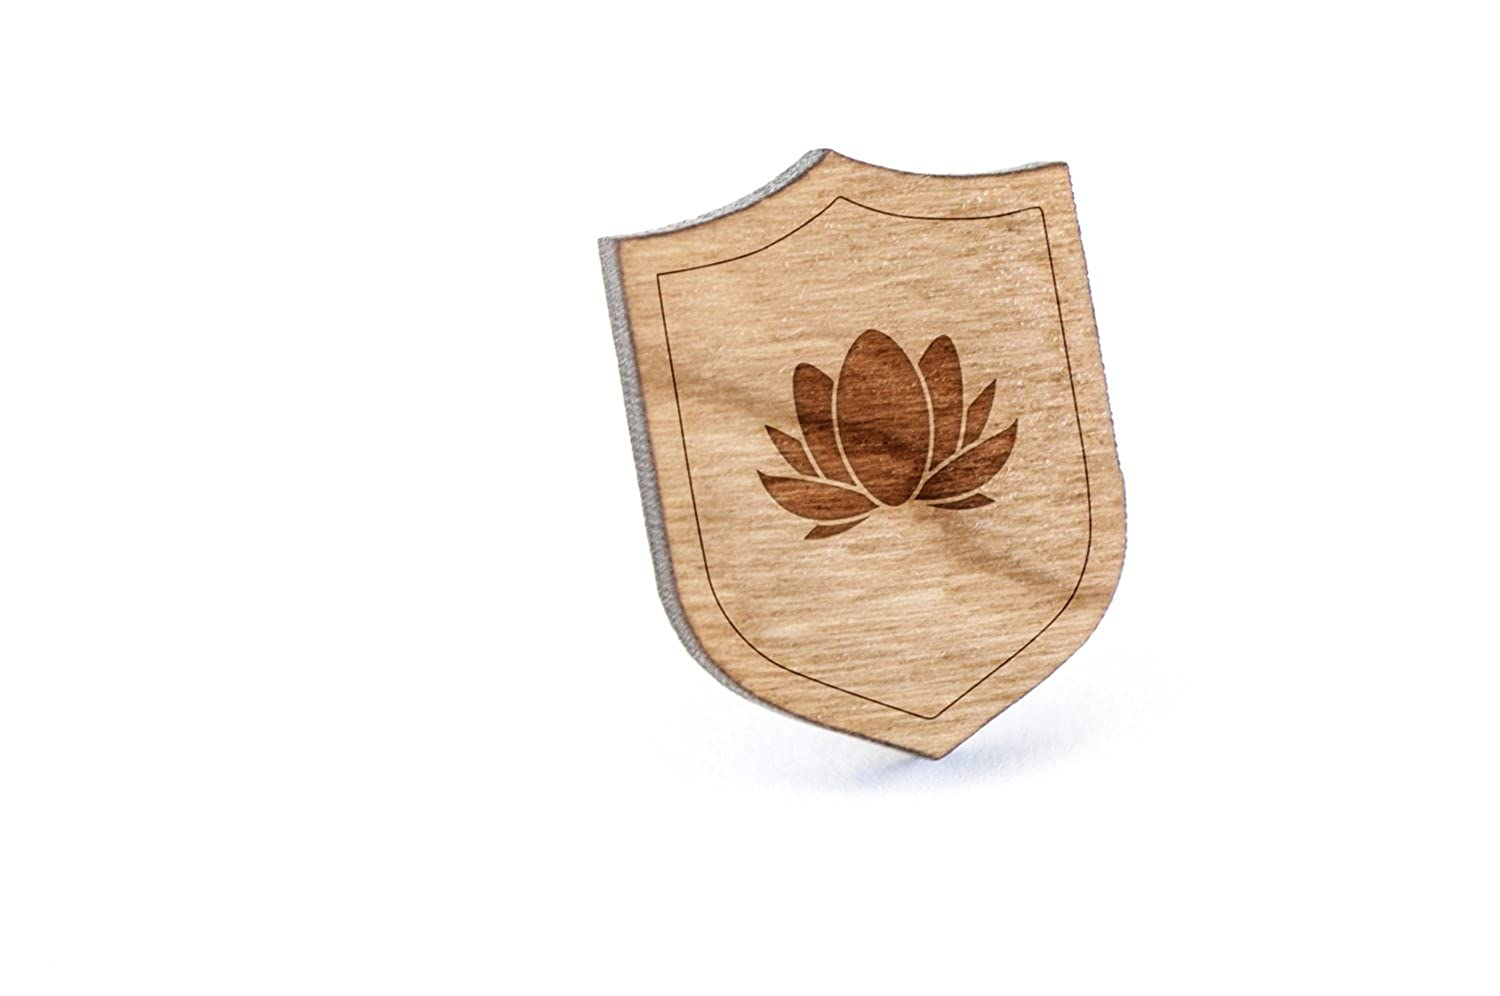 Lotus Lapel Pin, Wooden Pin Wooden Accessories Company lotus-pin